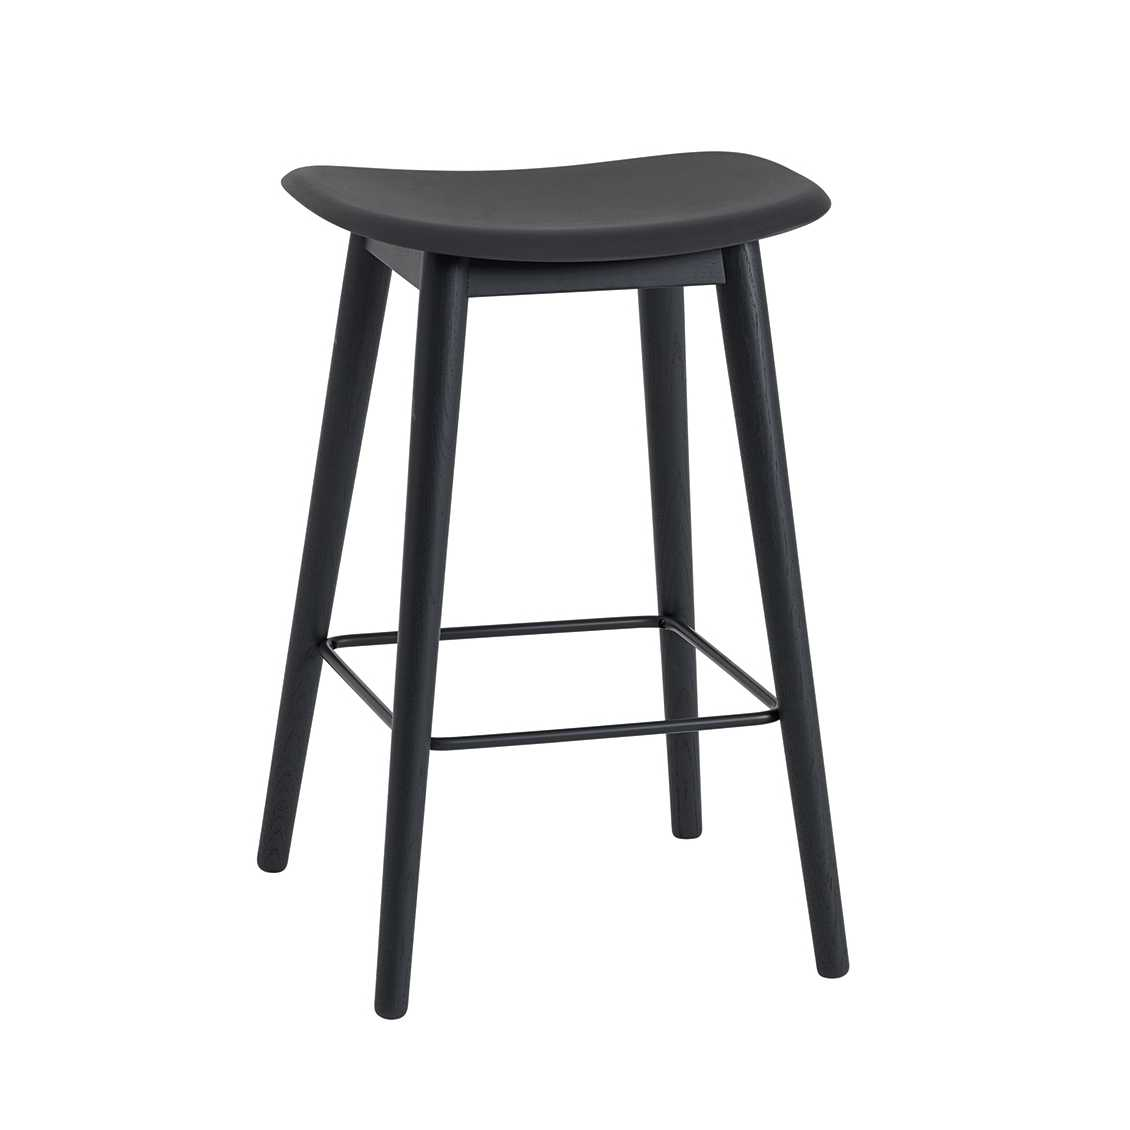 Outstanding Muuto Meubels Fiber Bar Stool H65 Wood Base Barkruk Spiritservingveterans Wood Chair Design Ideas Spiritservingveteransorg